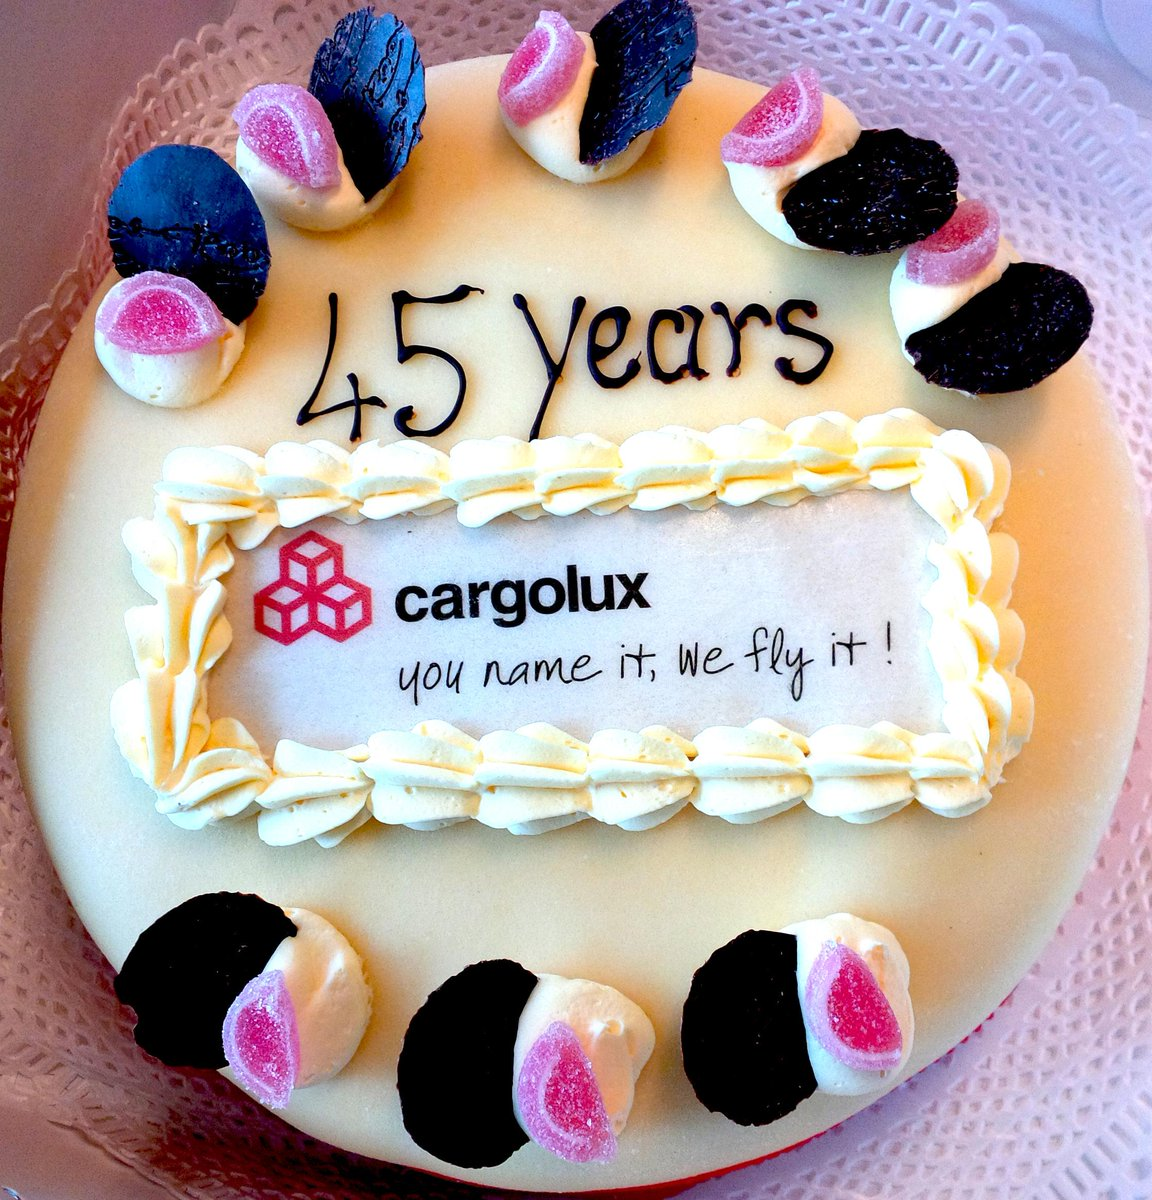 Outstanding Cargolux Airlines On Twitter Cargolux Intl Turns 45 Happy Personalised Birthday Cards Paralily Jamesorg